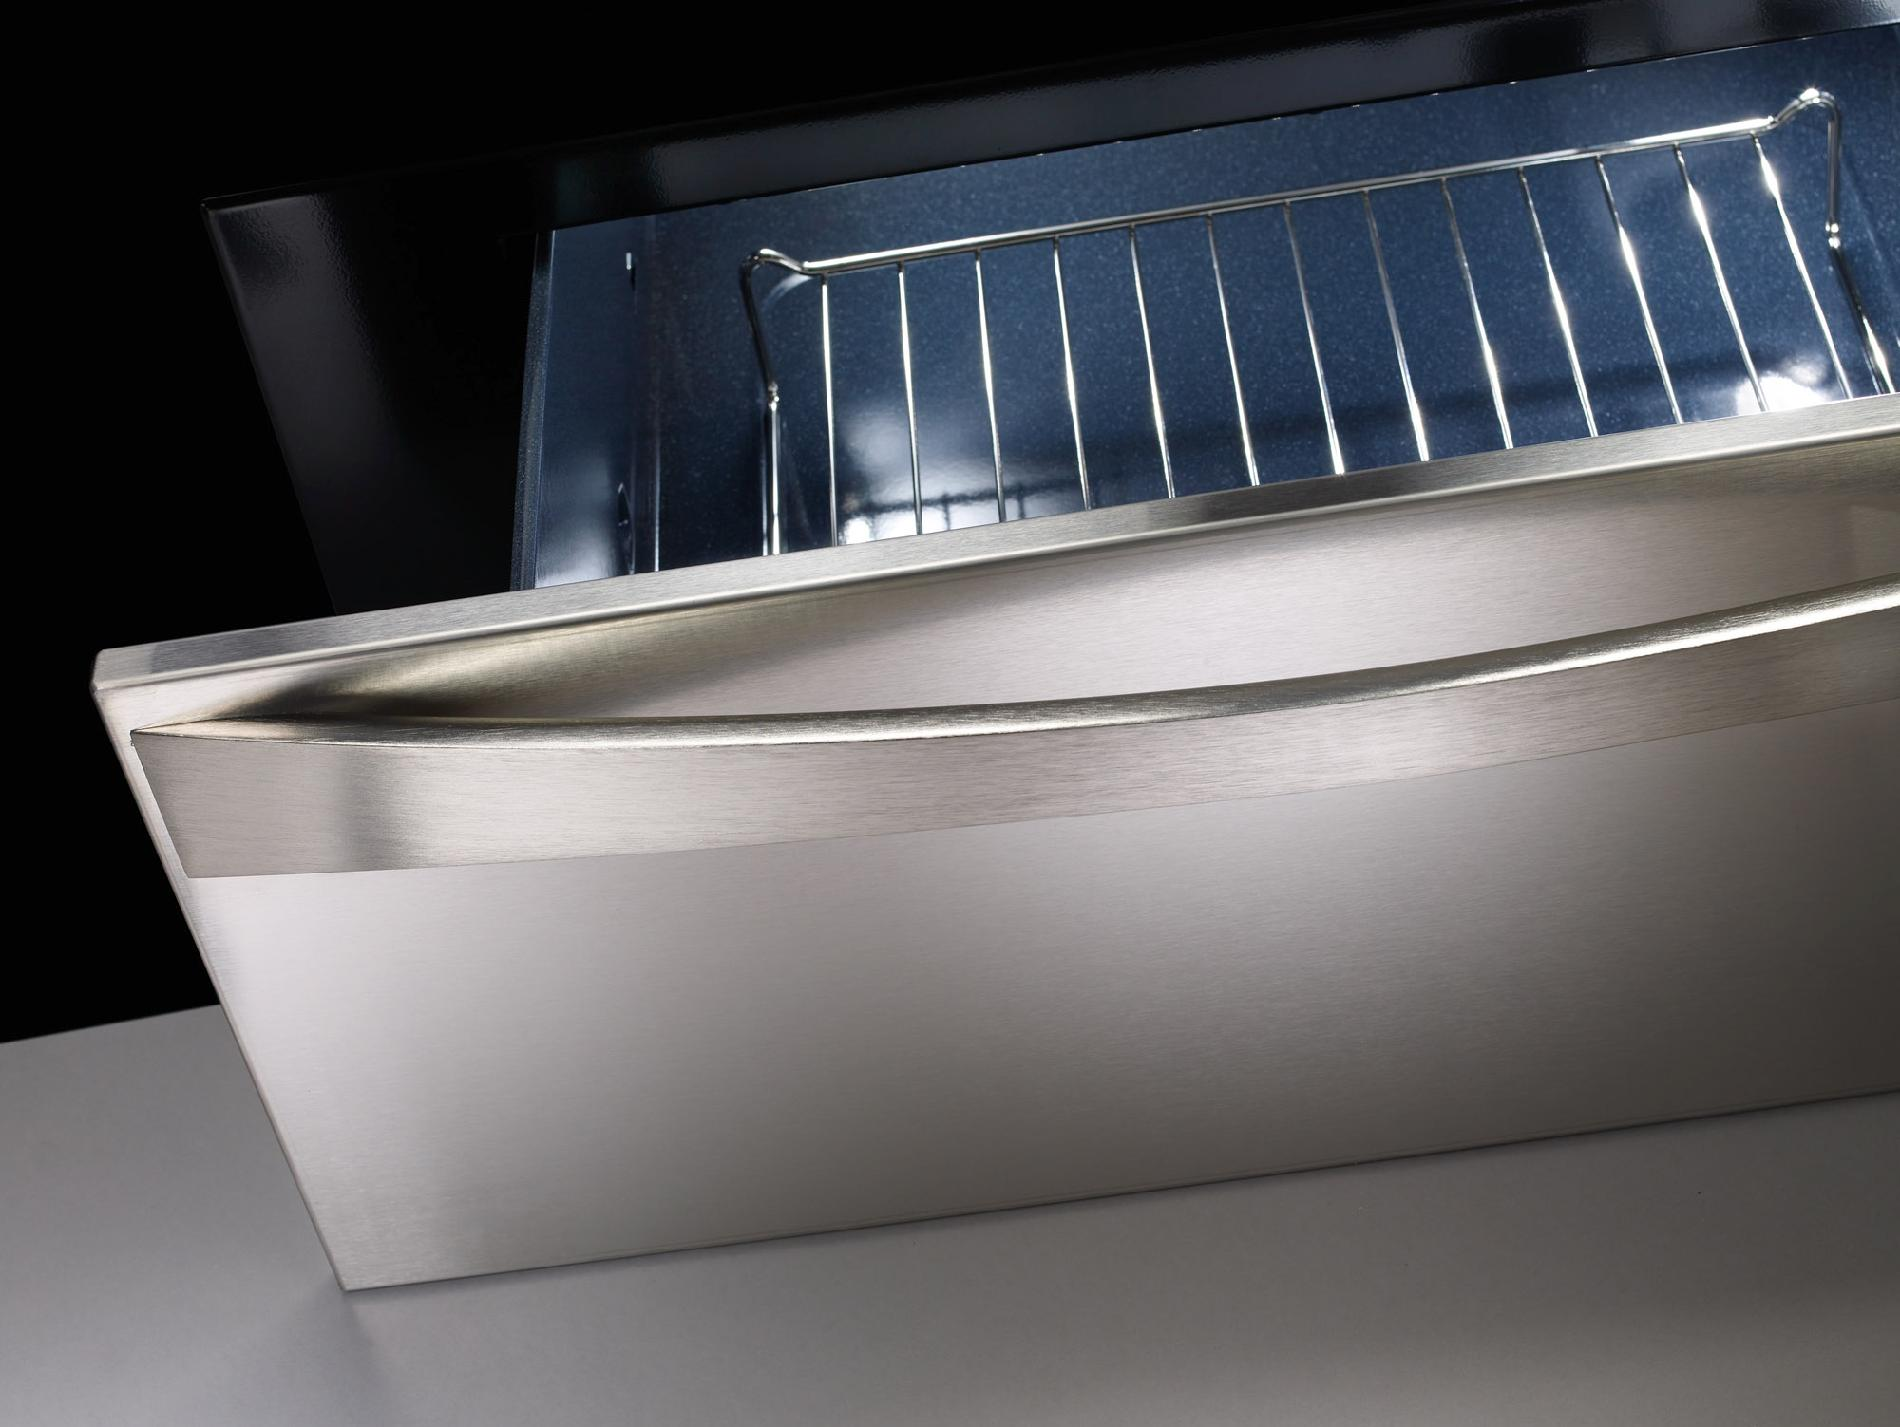 "Kenmore Elite 49313 30"" Warming Drawer"